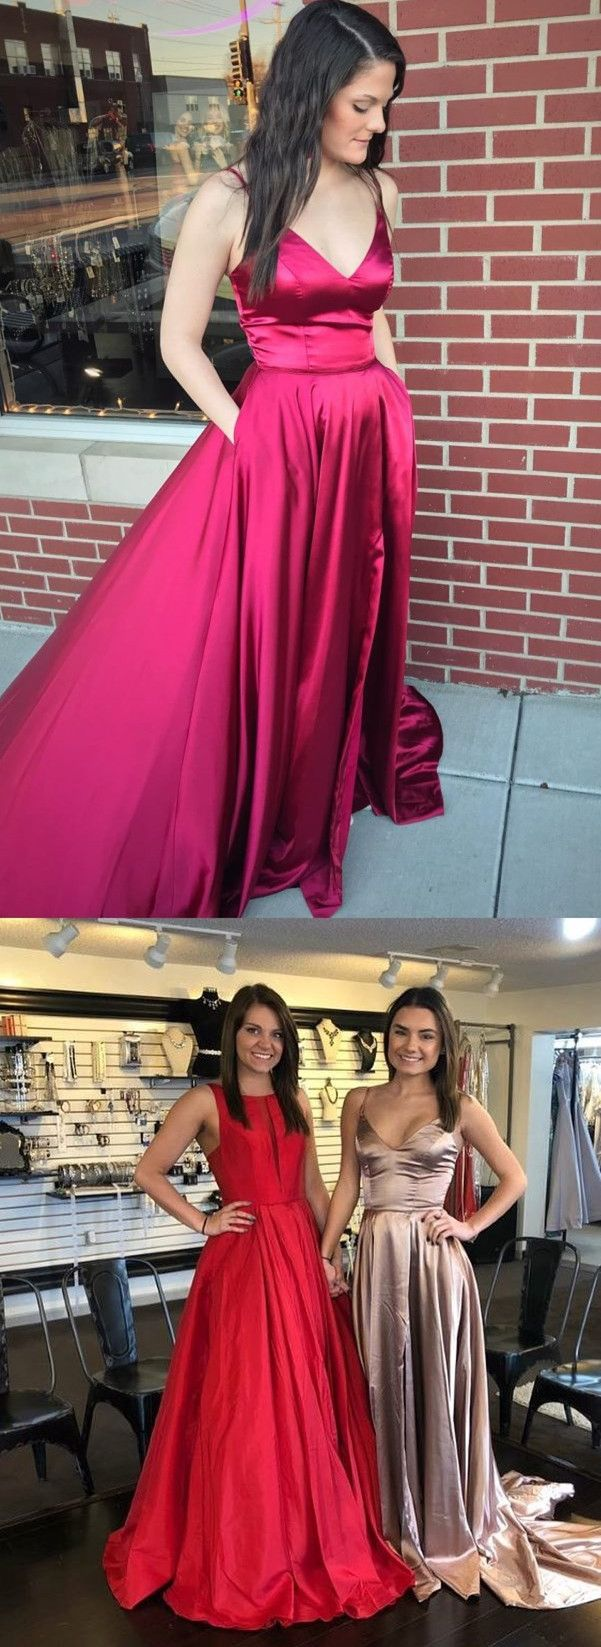 Eleagnt aline straps redchampagne long prom dress ball gown